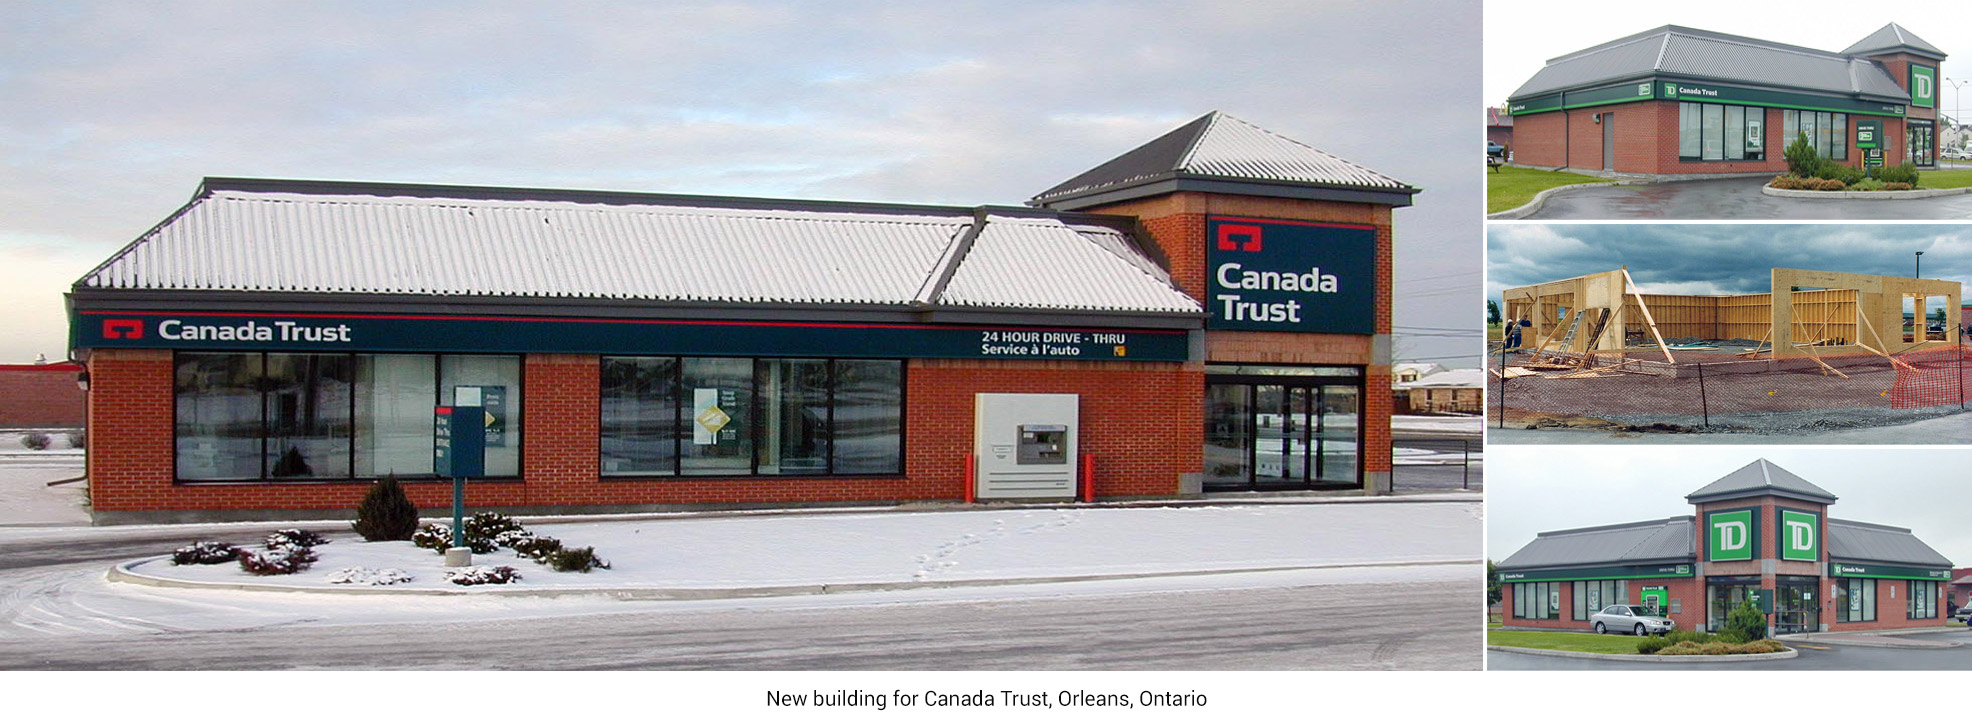 New building for Canada Trust, Orleans, Ontario